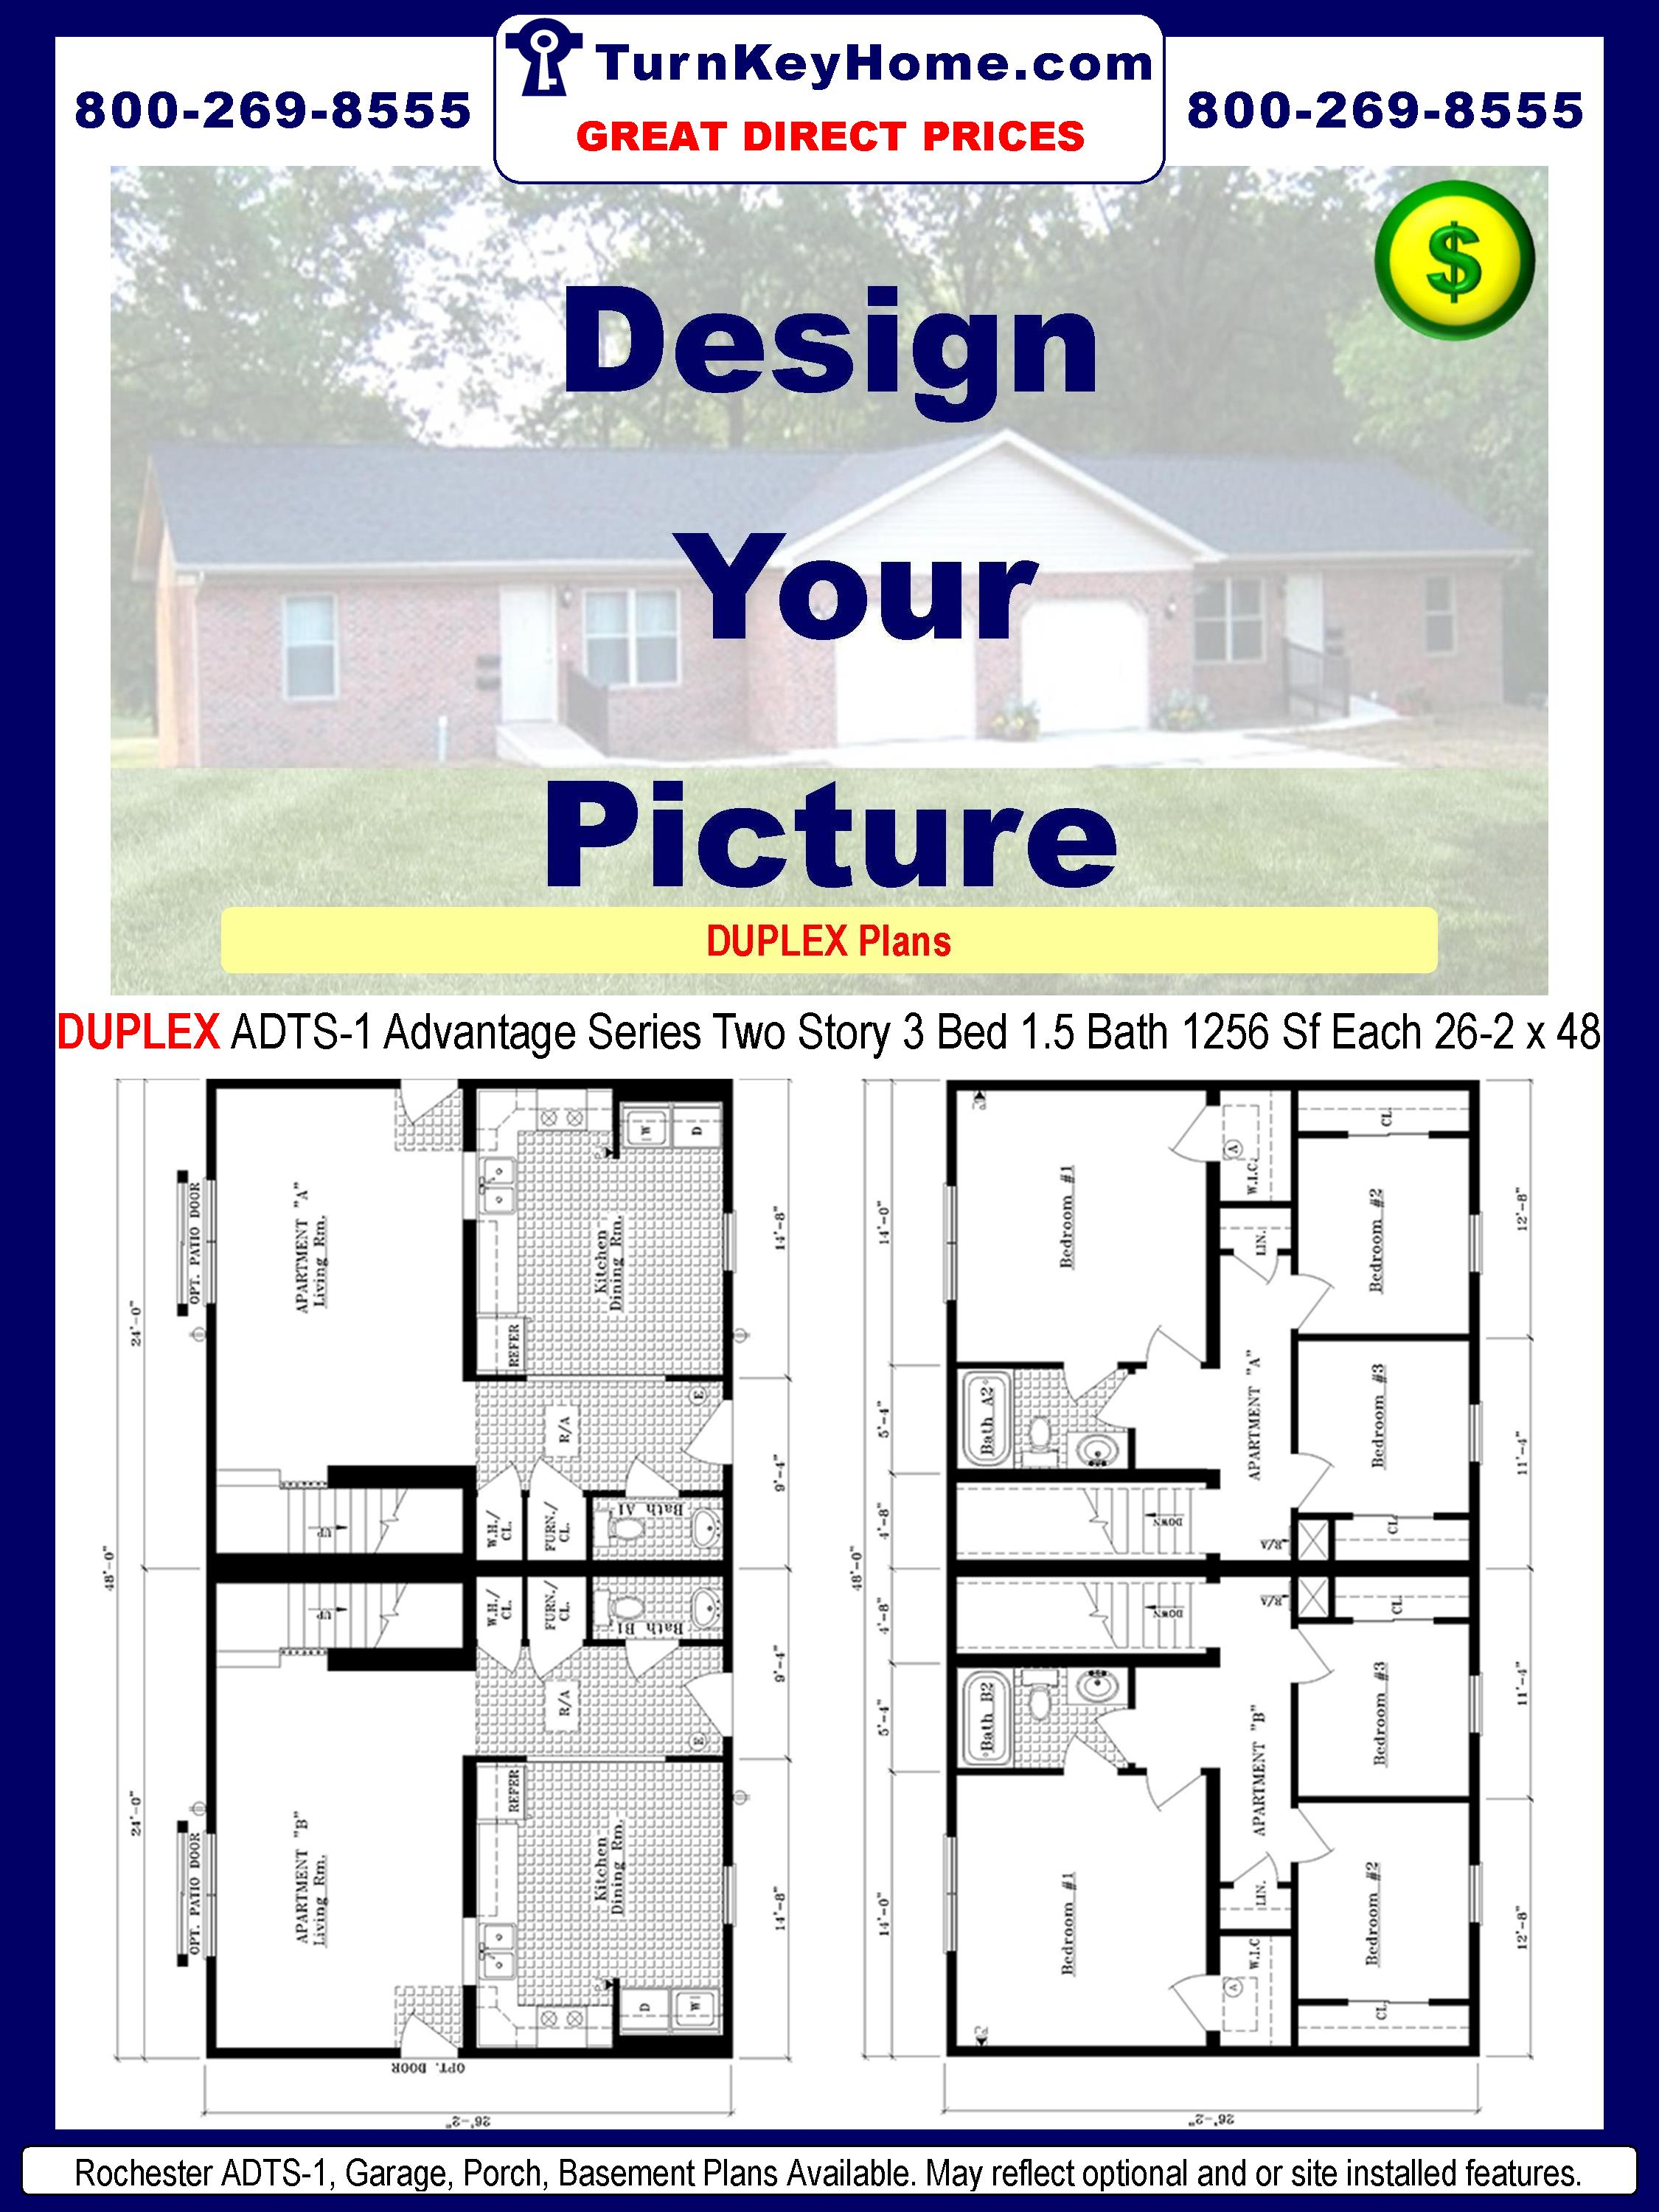 duplex adts 1 2 1 1256 sf each two story plan rochester homes